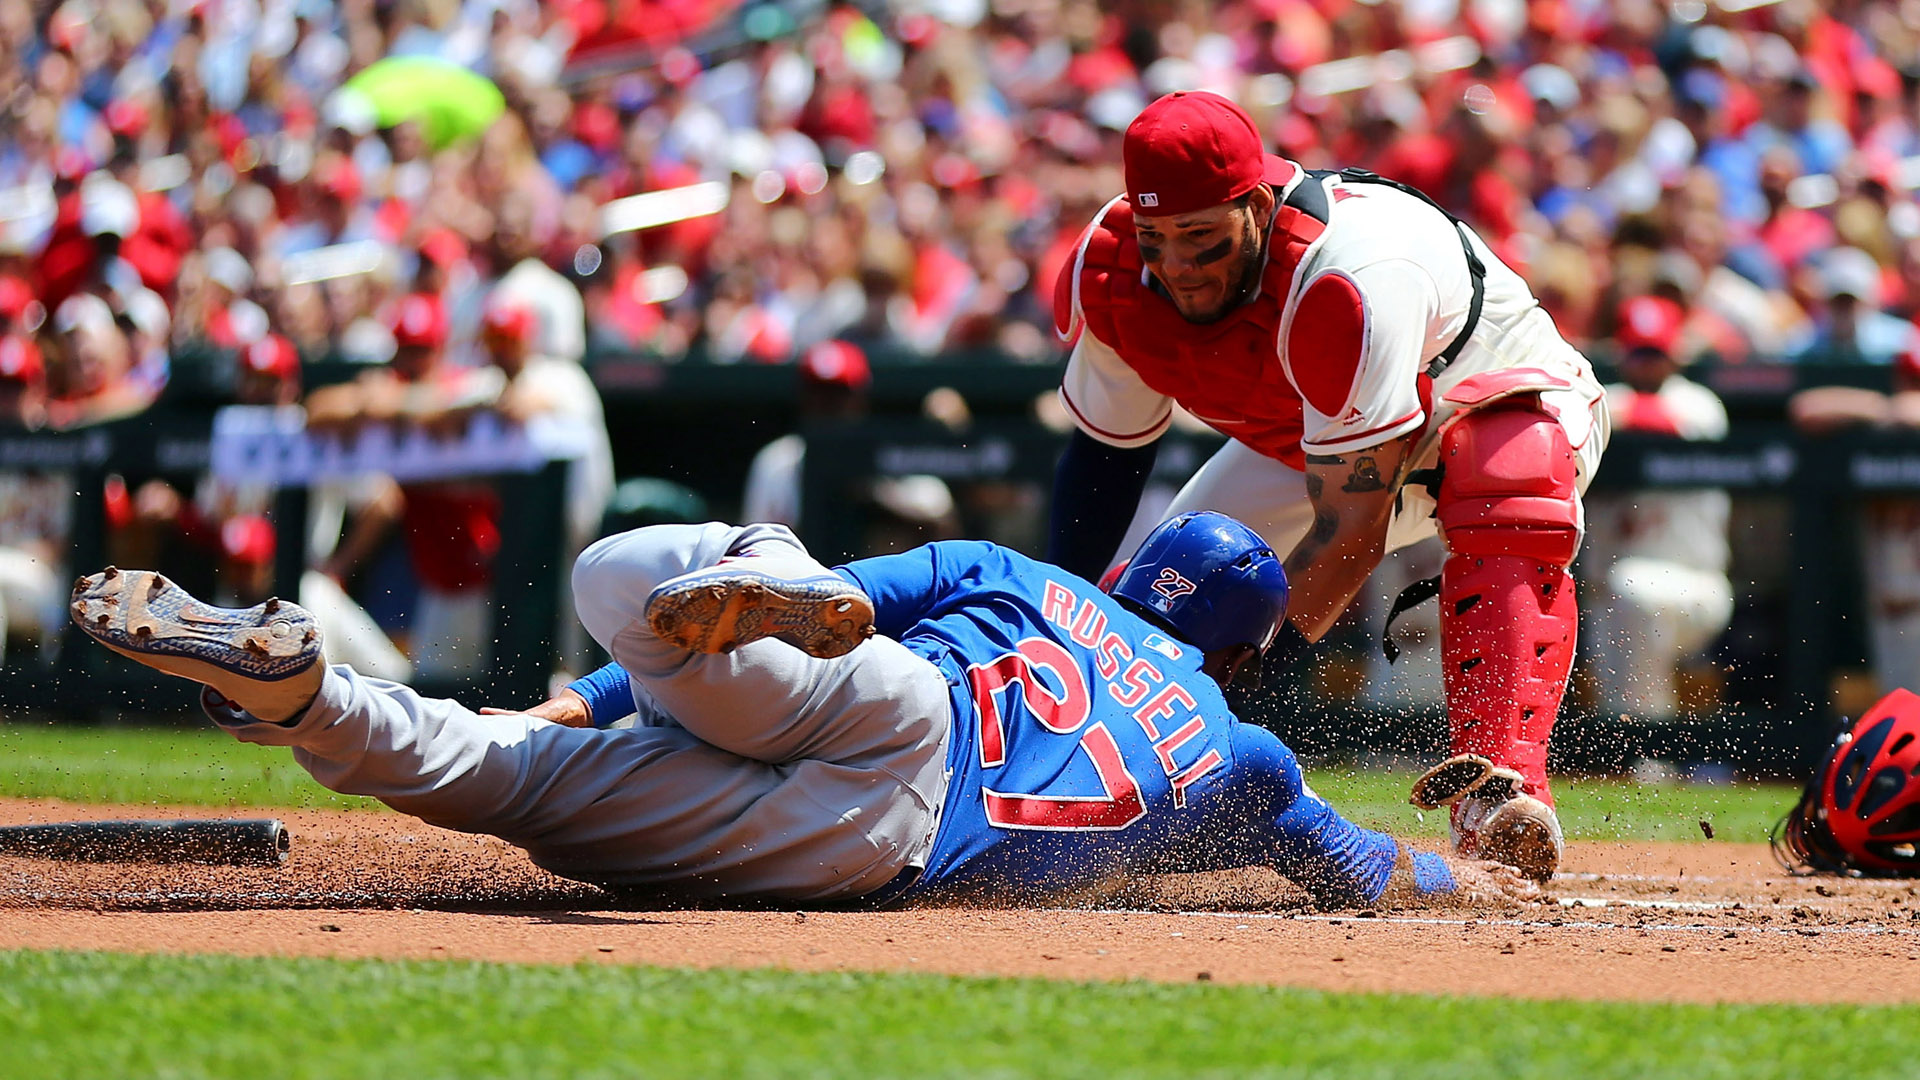 Cardinals Catcher Leaves Game After Getting Hit In Groin By Foul Ball